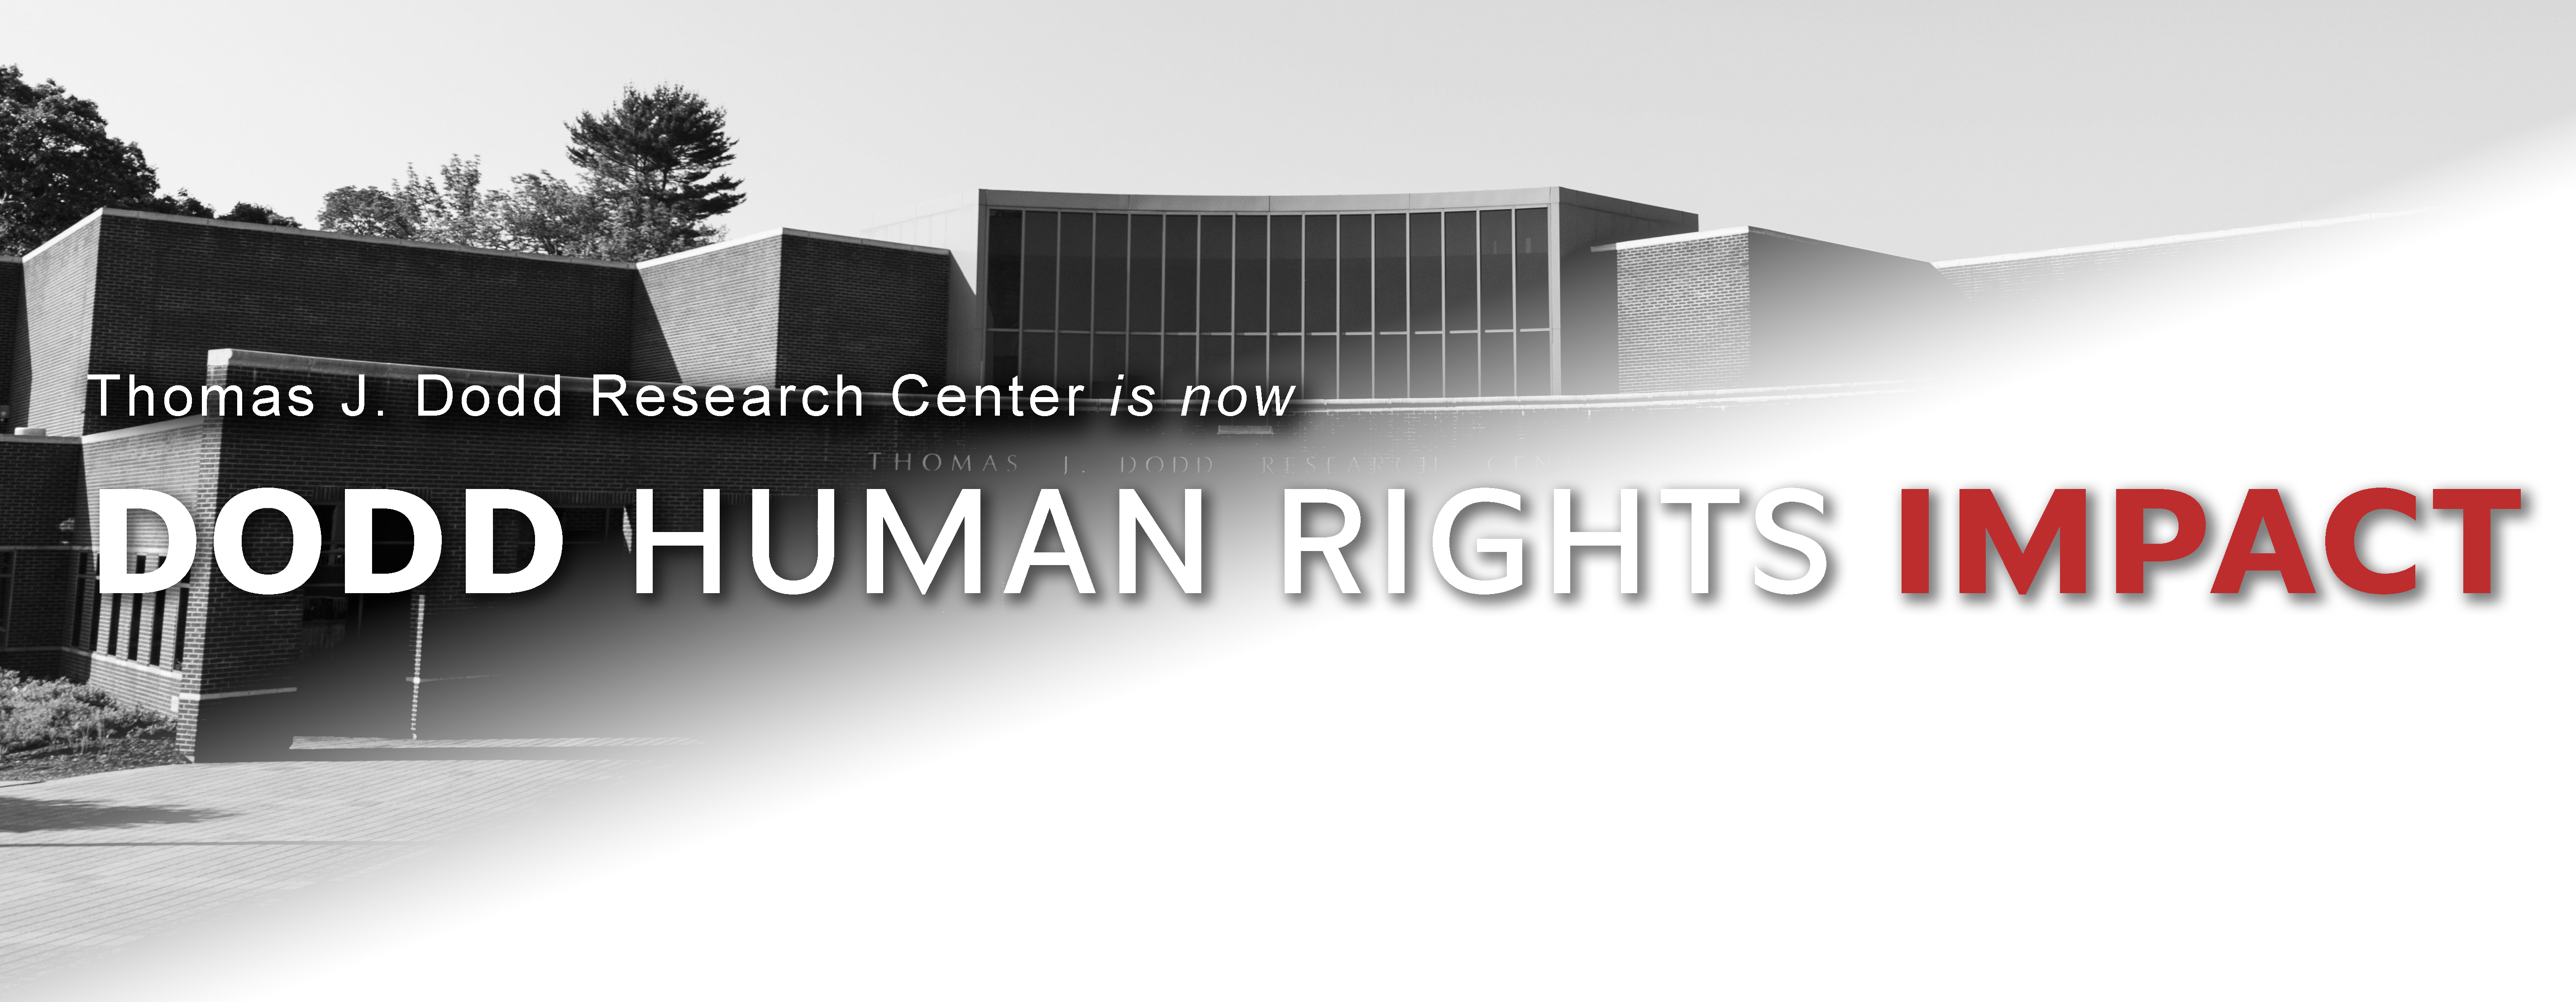 The Dodd Center is now Dodd Human Rights Impact Image